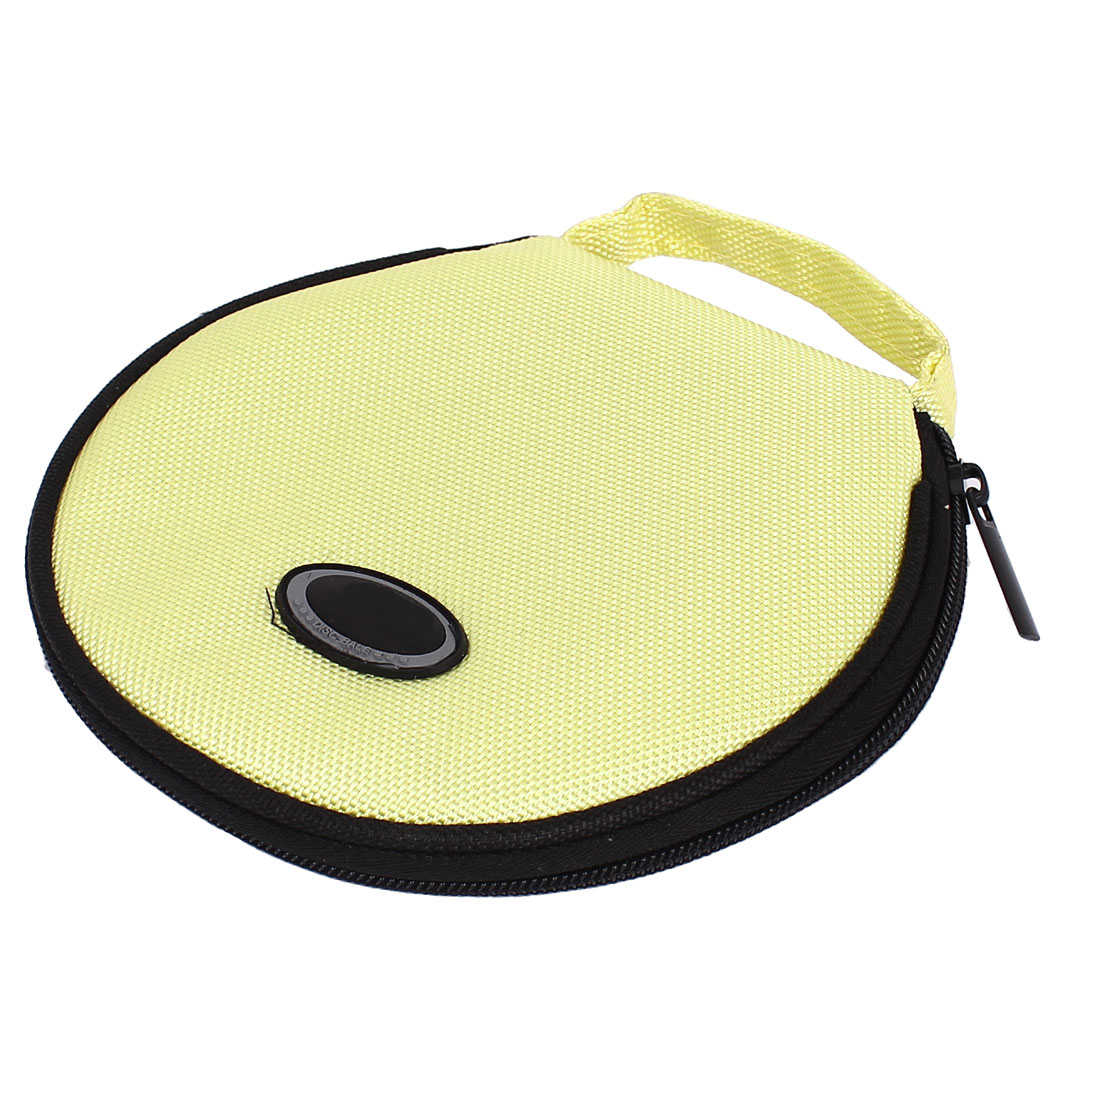 Zipper Closure Round CD Discs Holder Bag Storage Carry Case Cover Wallet Light Yellow